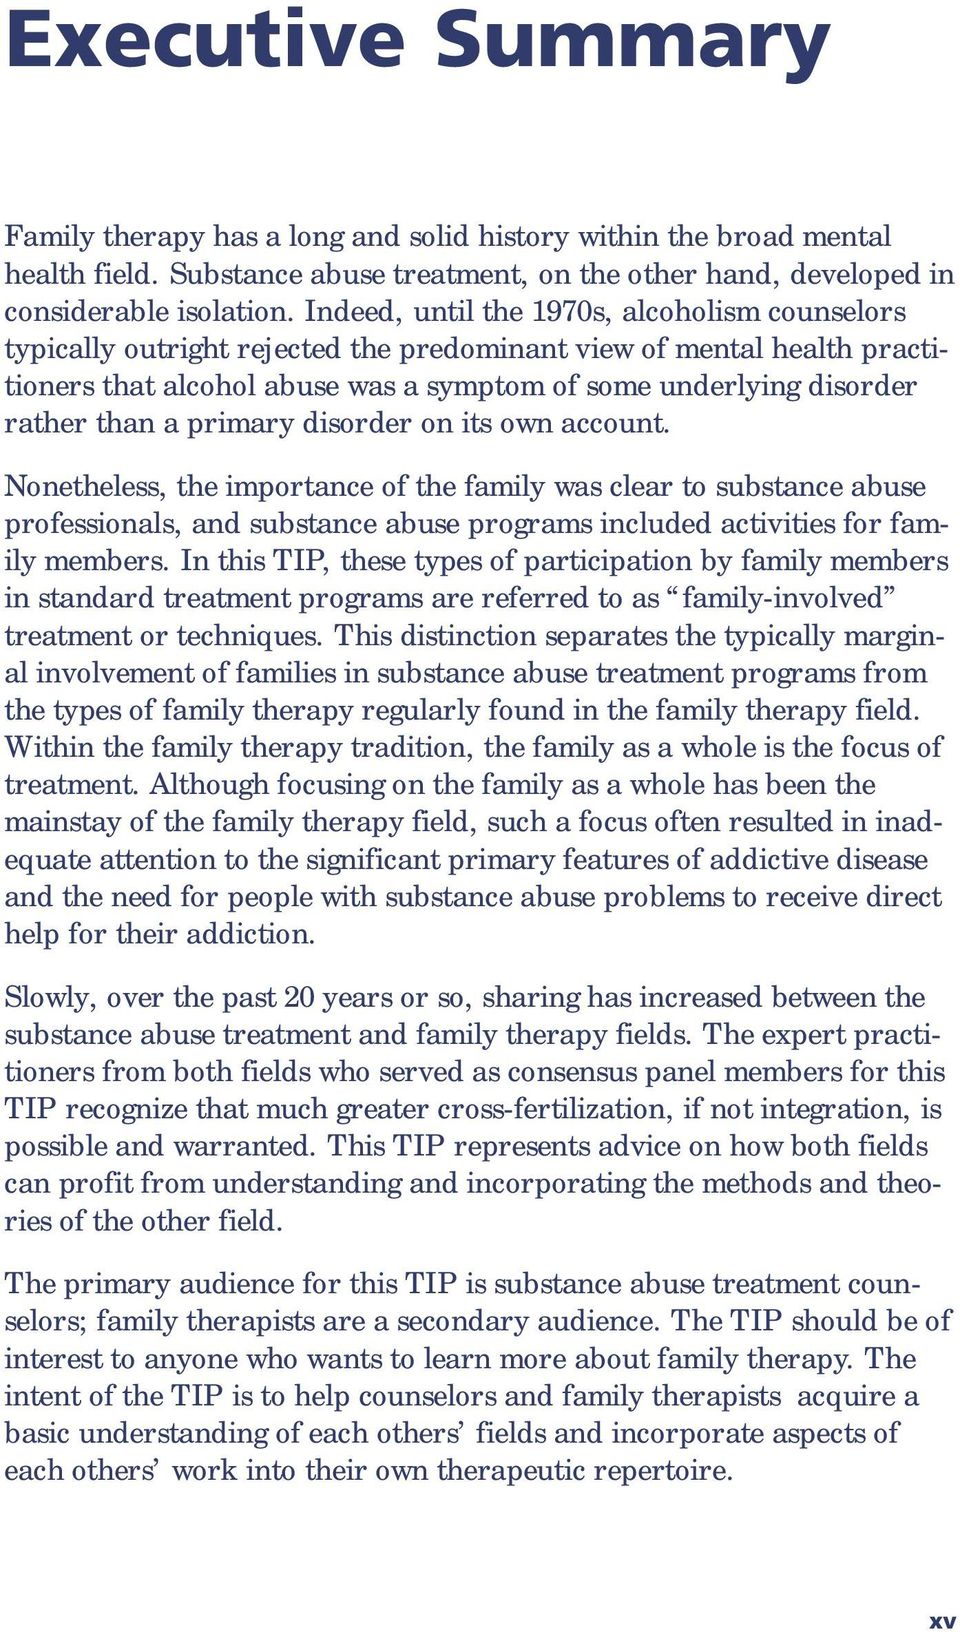 a primary disorder on its own account. Nonetheless, the importance of the family was clear to substance abuse professionals, and substance abuse programs included activities for family members.